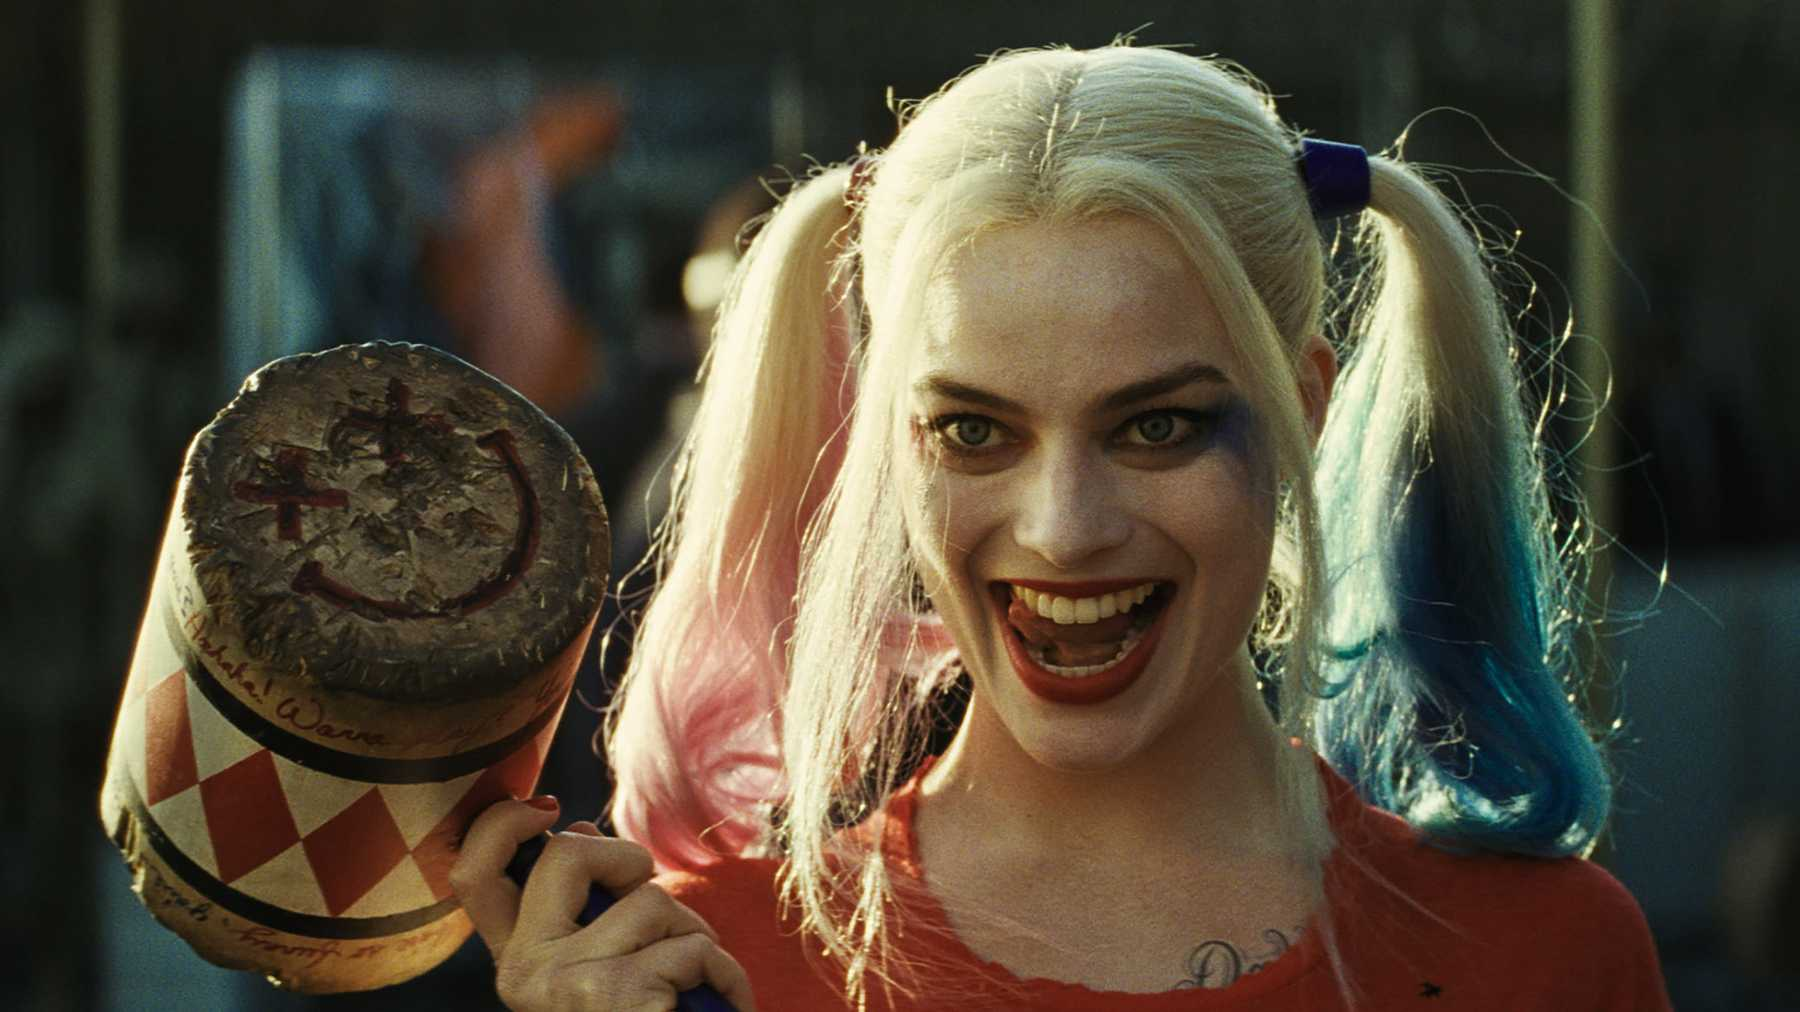 Birds Of Prey Everything You Need To Know About Margot Robbie S Harley Quinn Spin Off Movies Empire